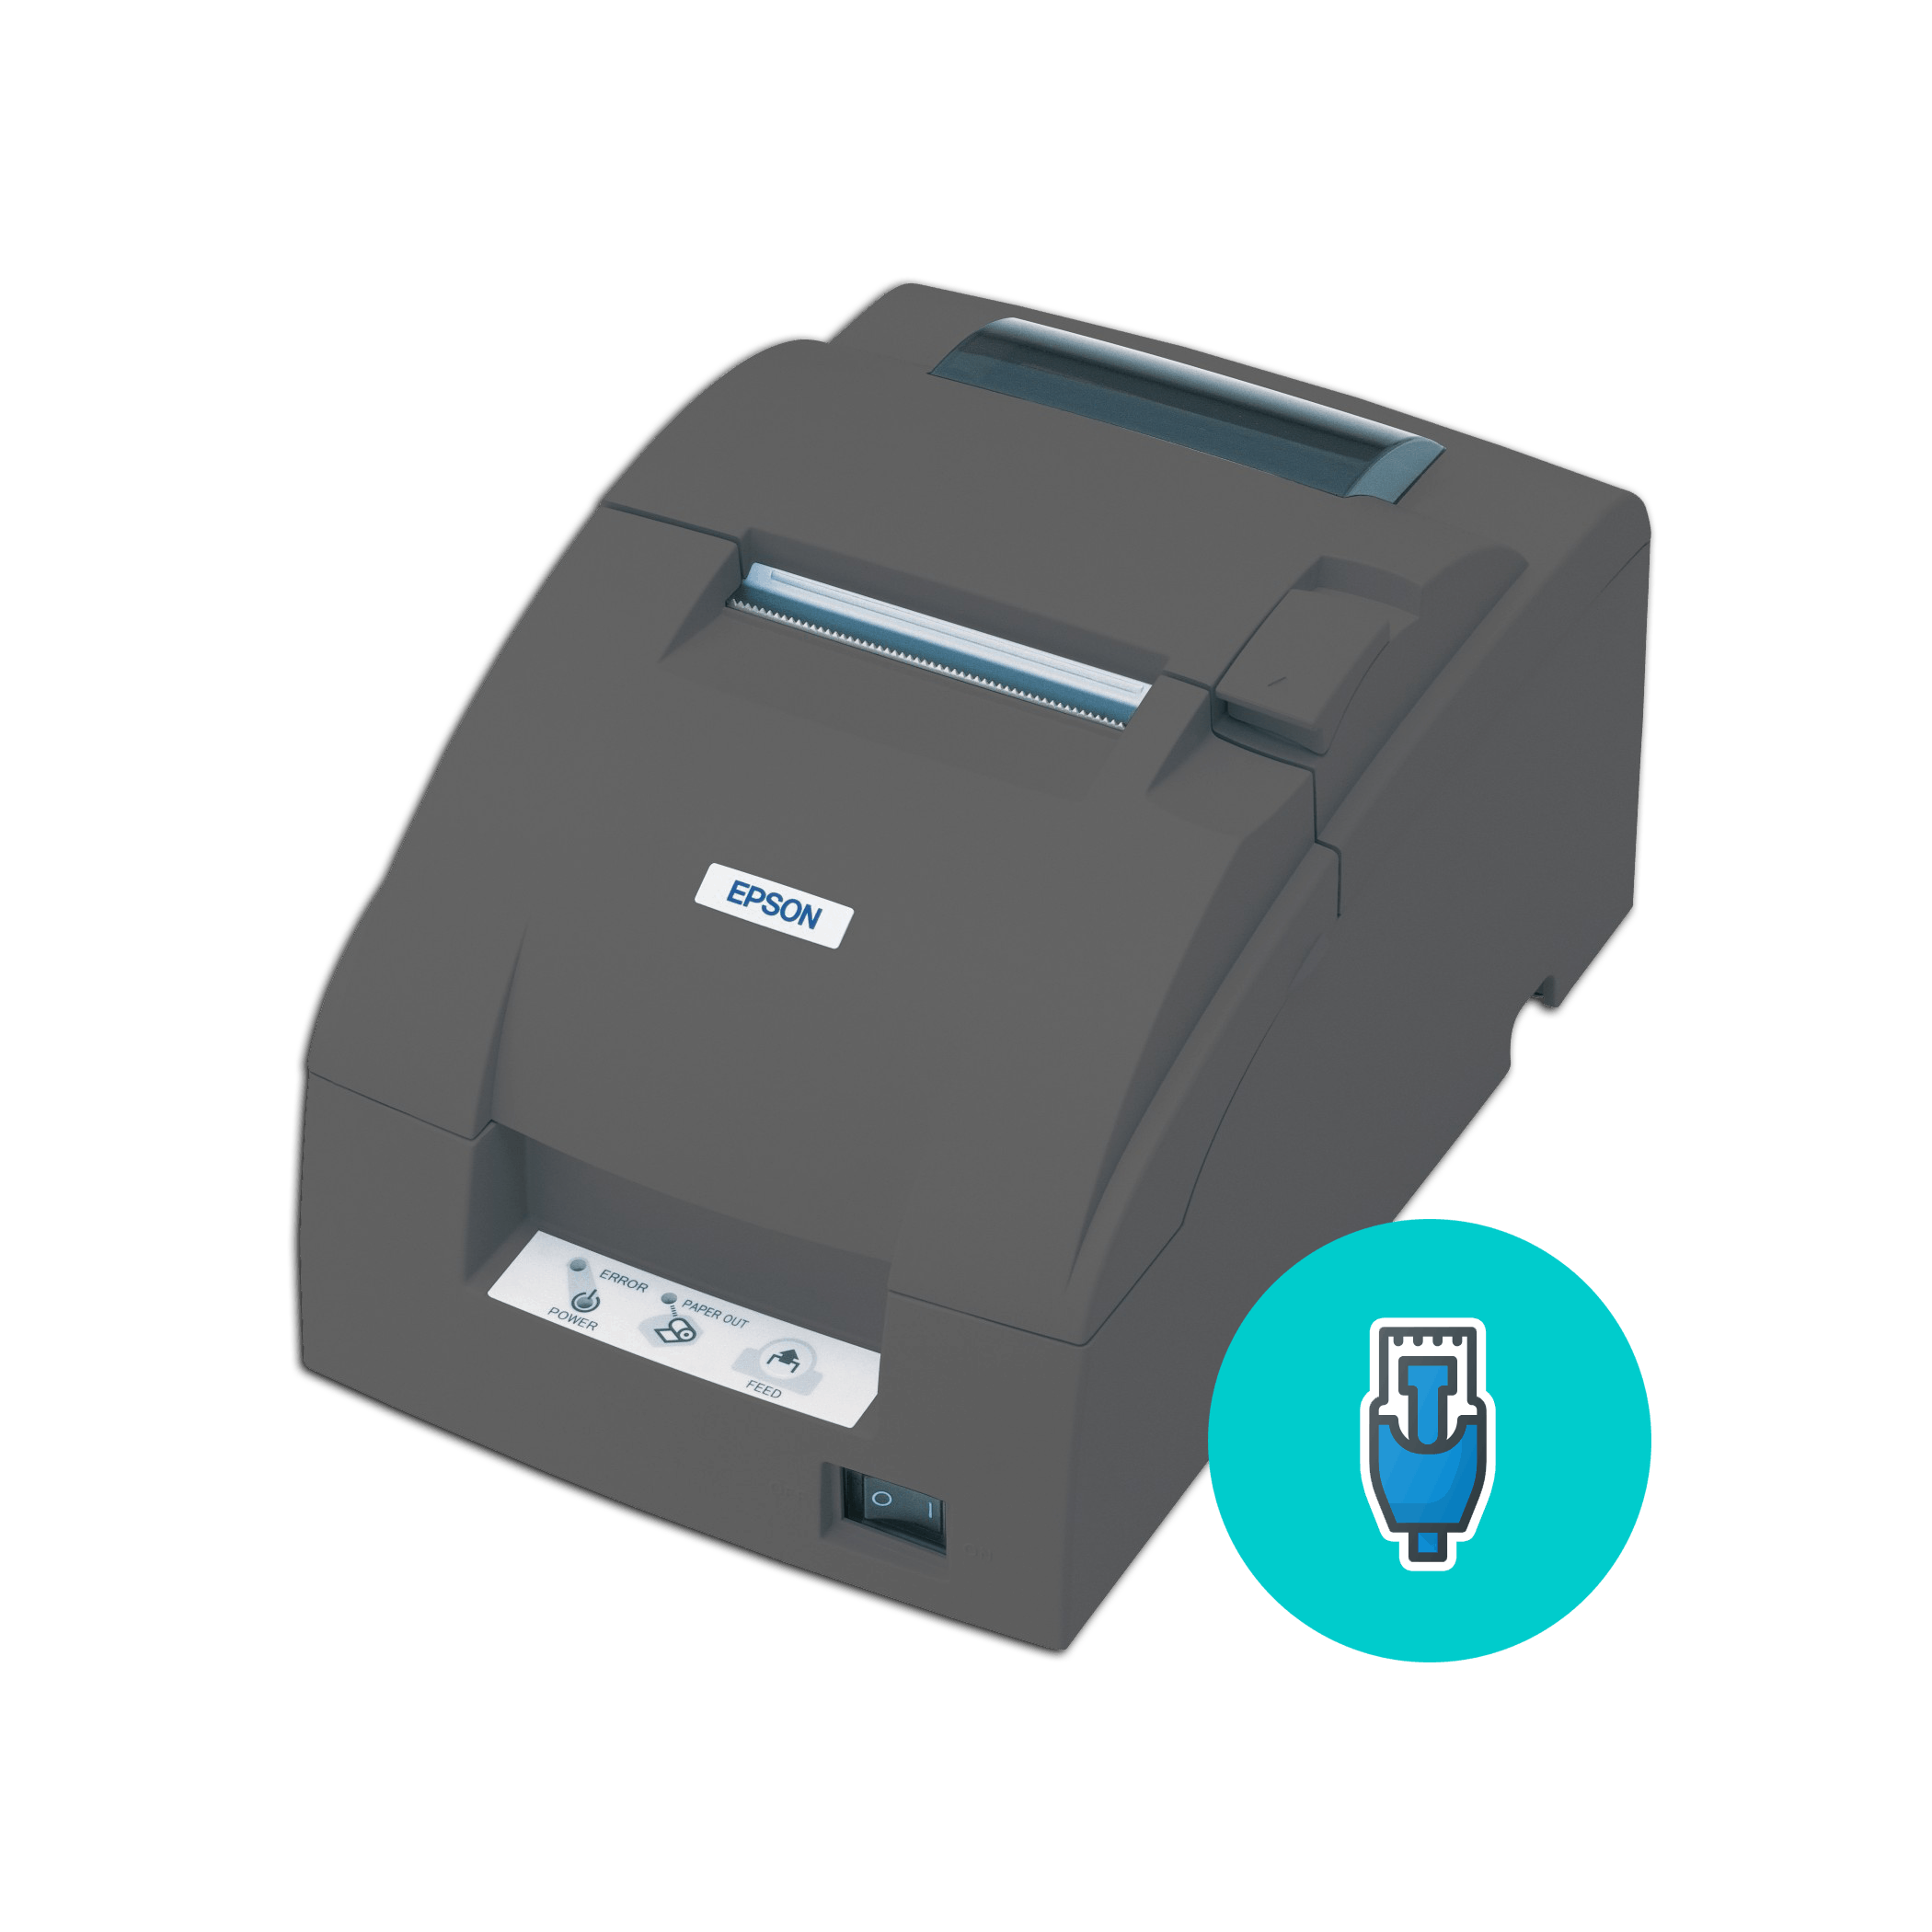 EPSON-TMU220B-ETHERNET-PRINTER